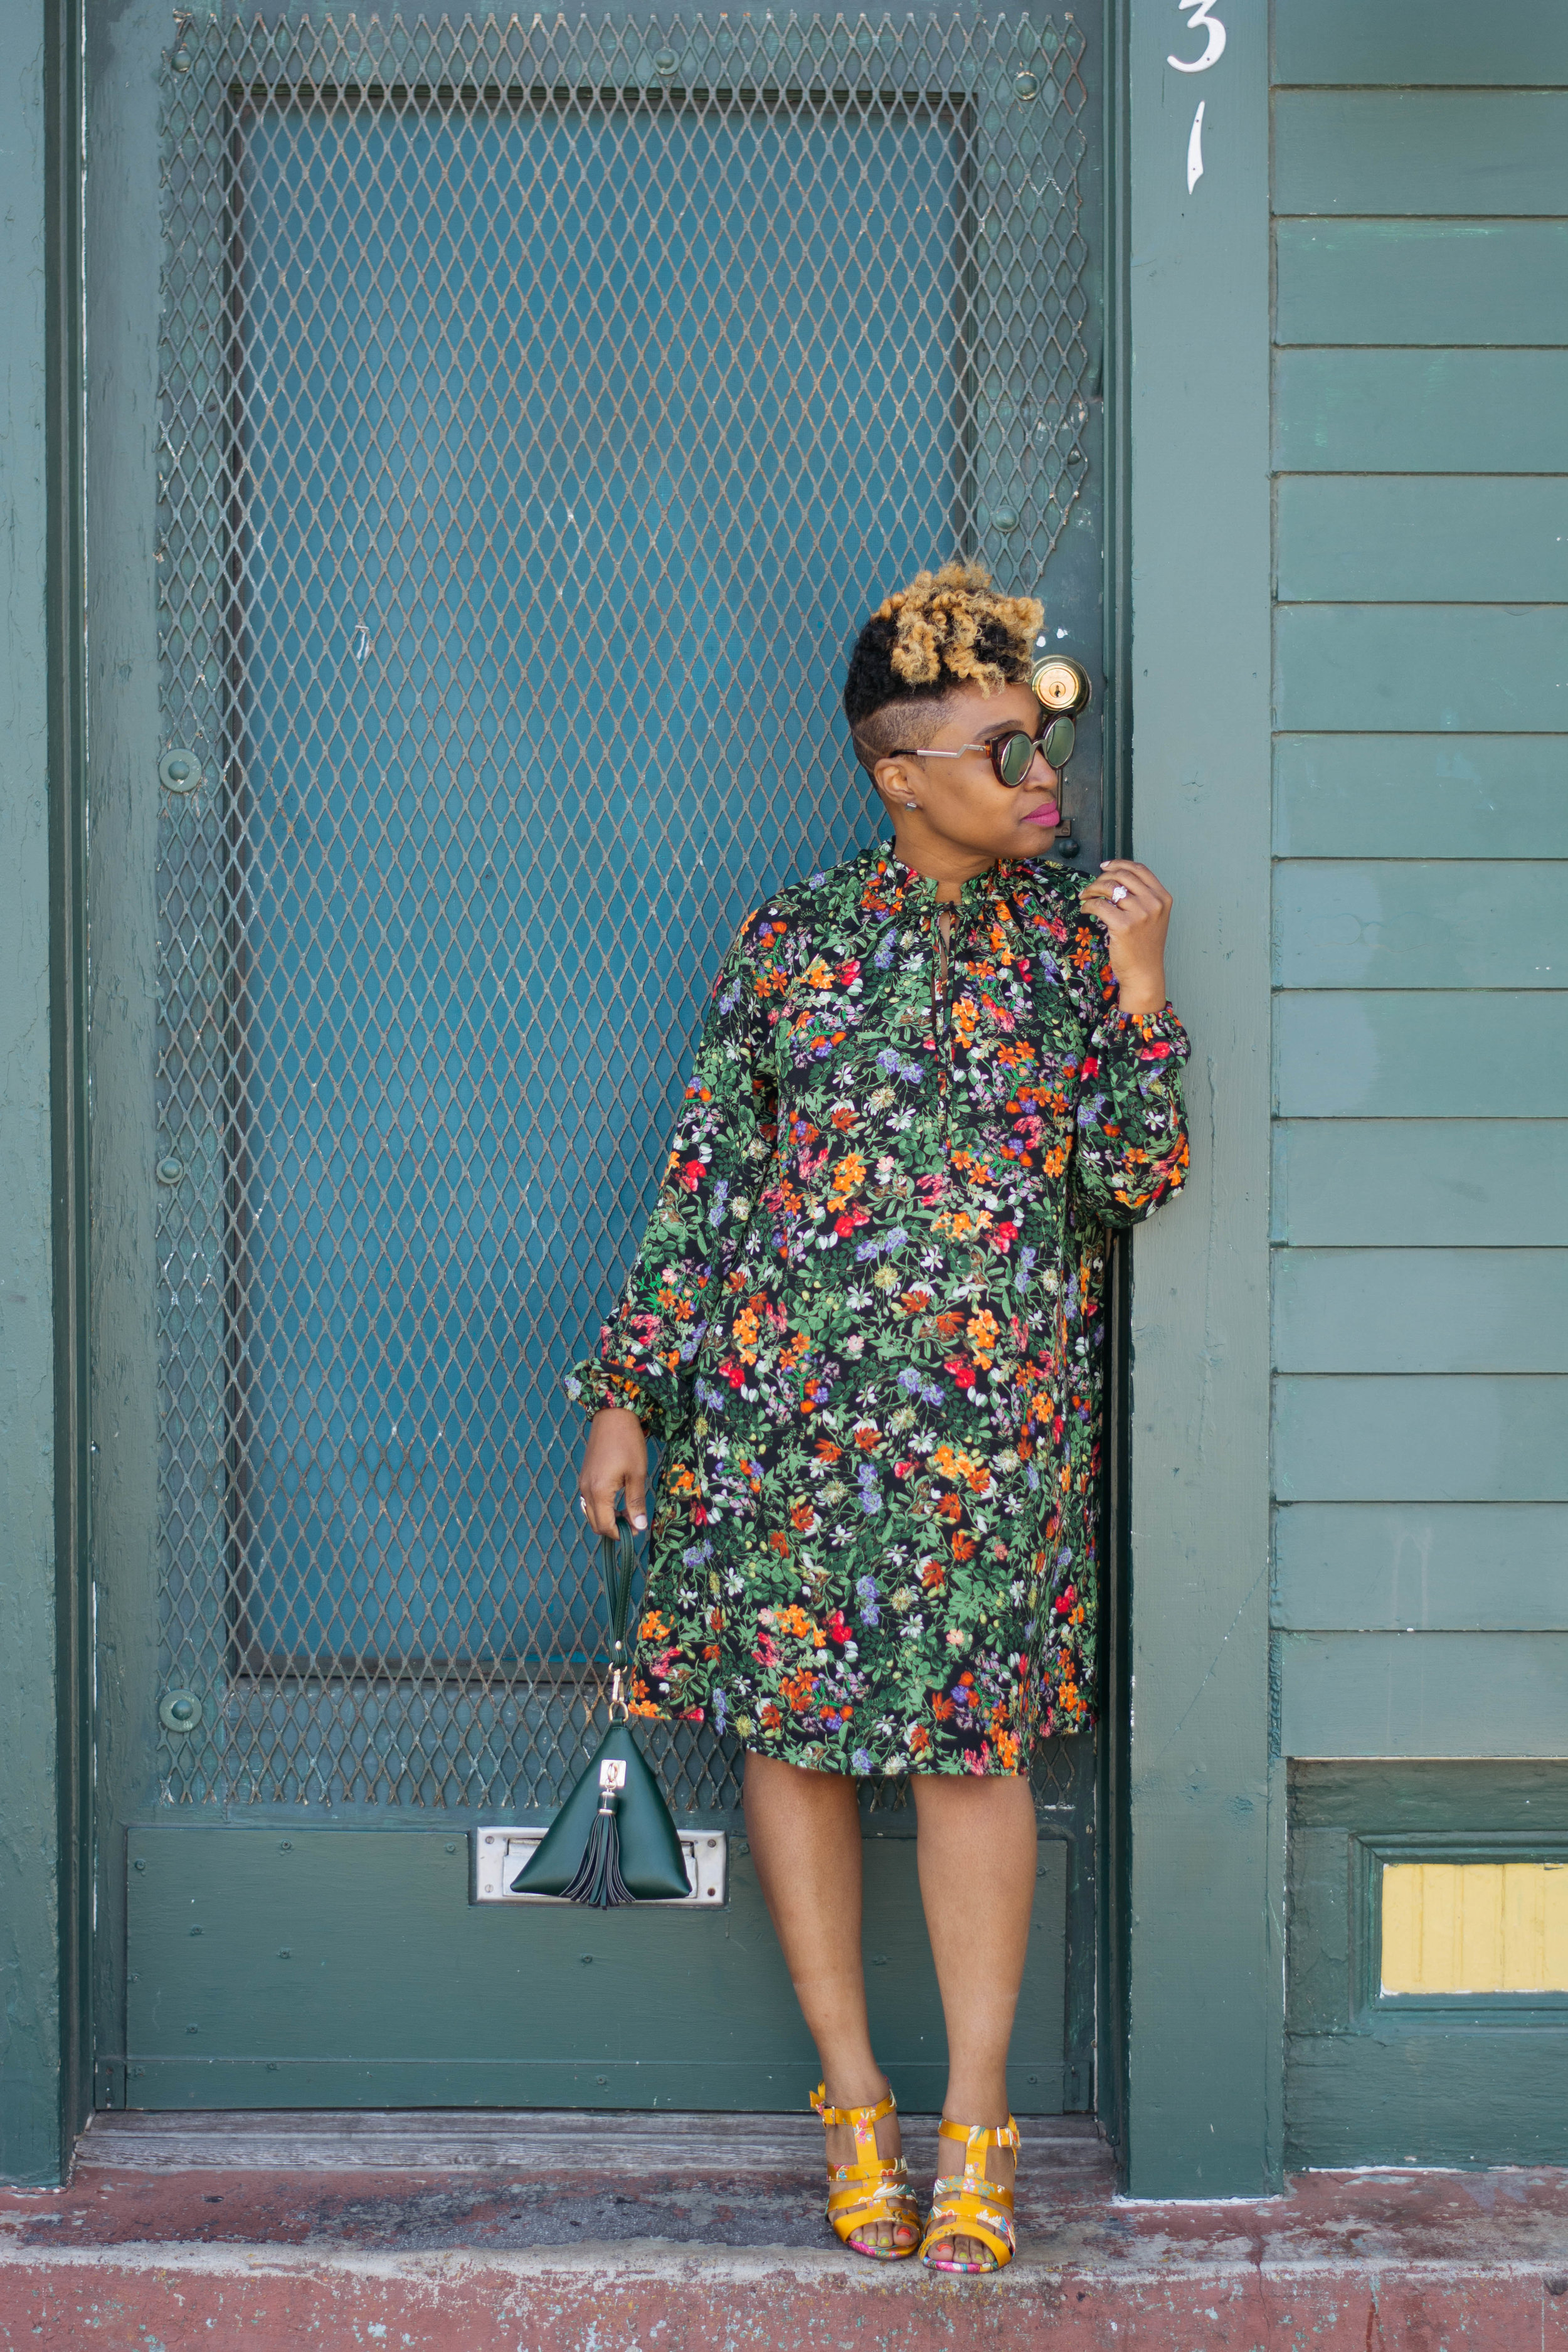 Top Atlanta blogger, Atlanta Personal Stylist, floral dress street style